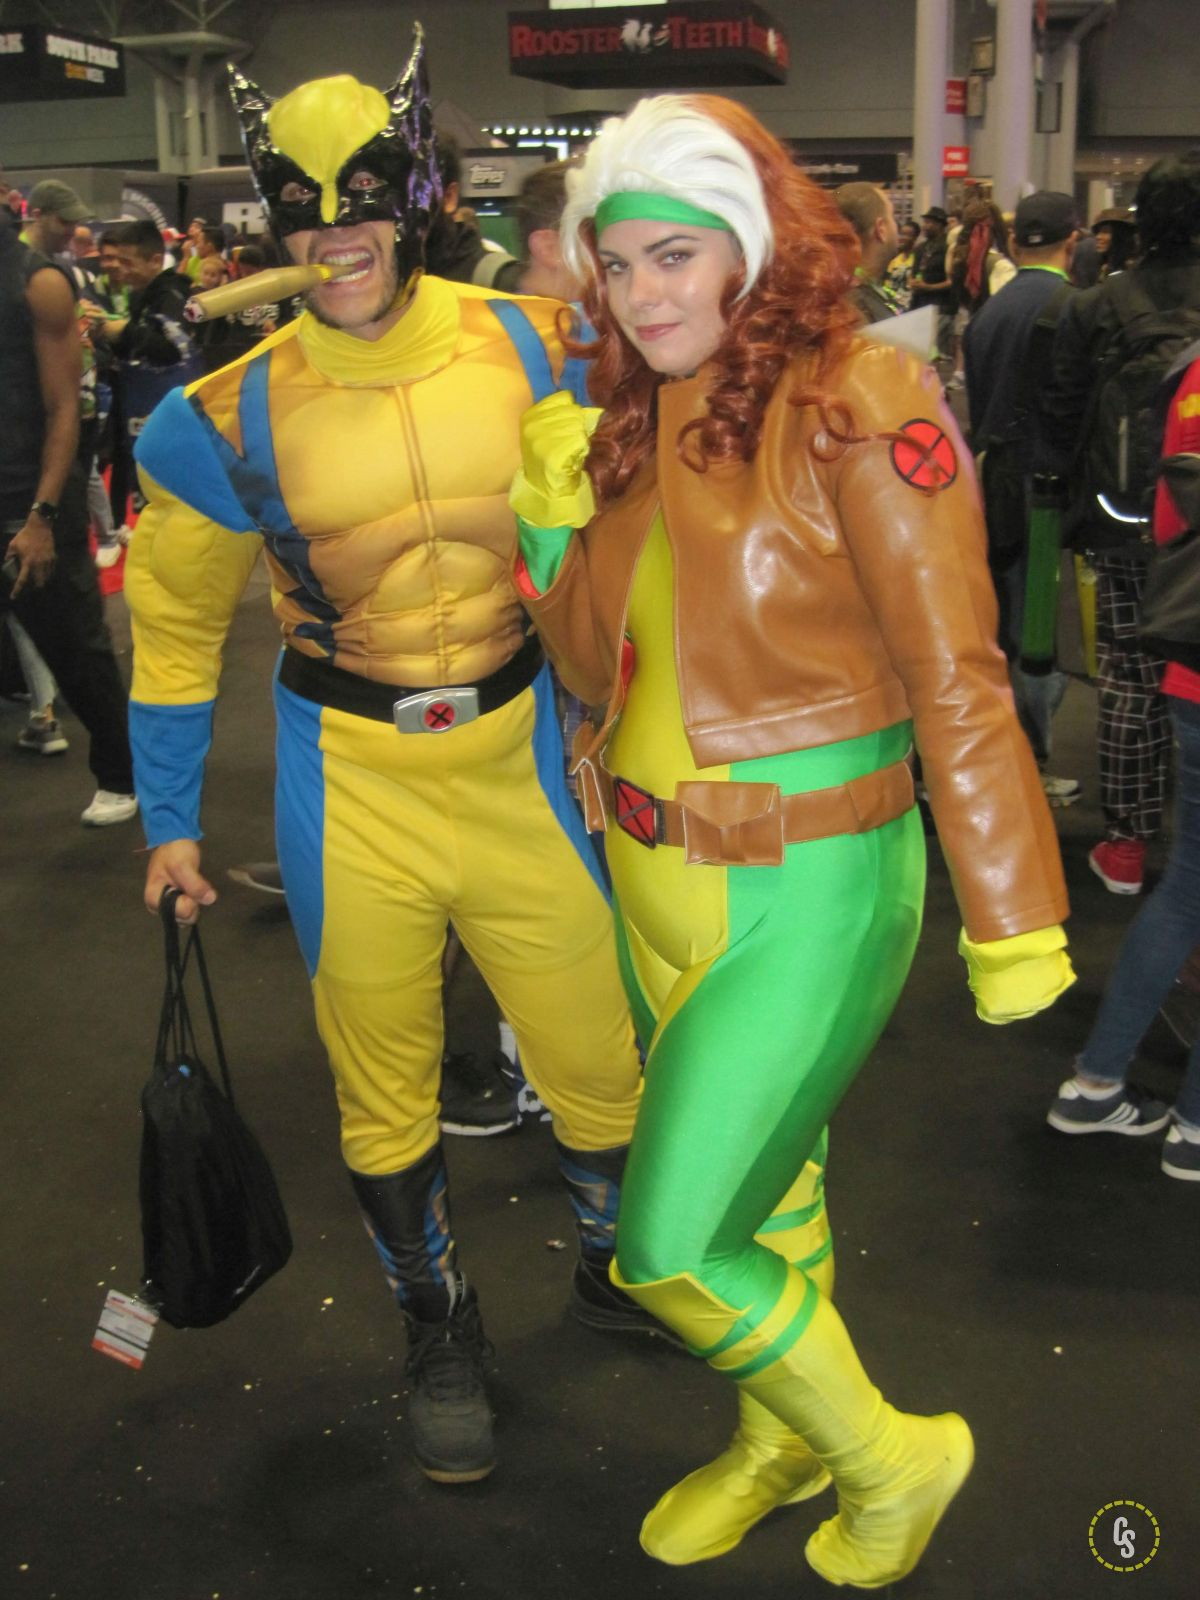 nycc183_023